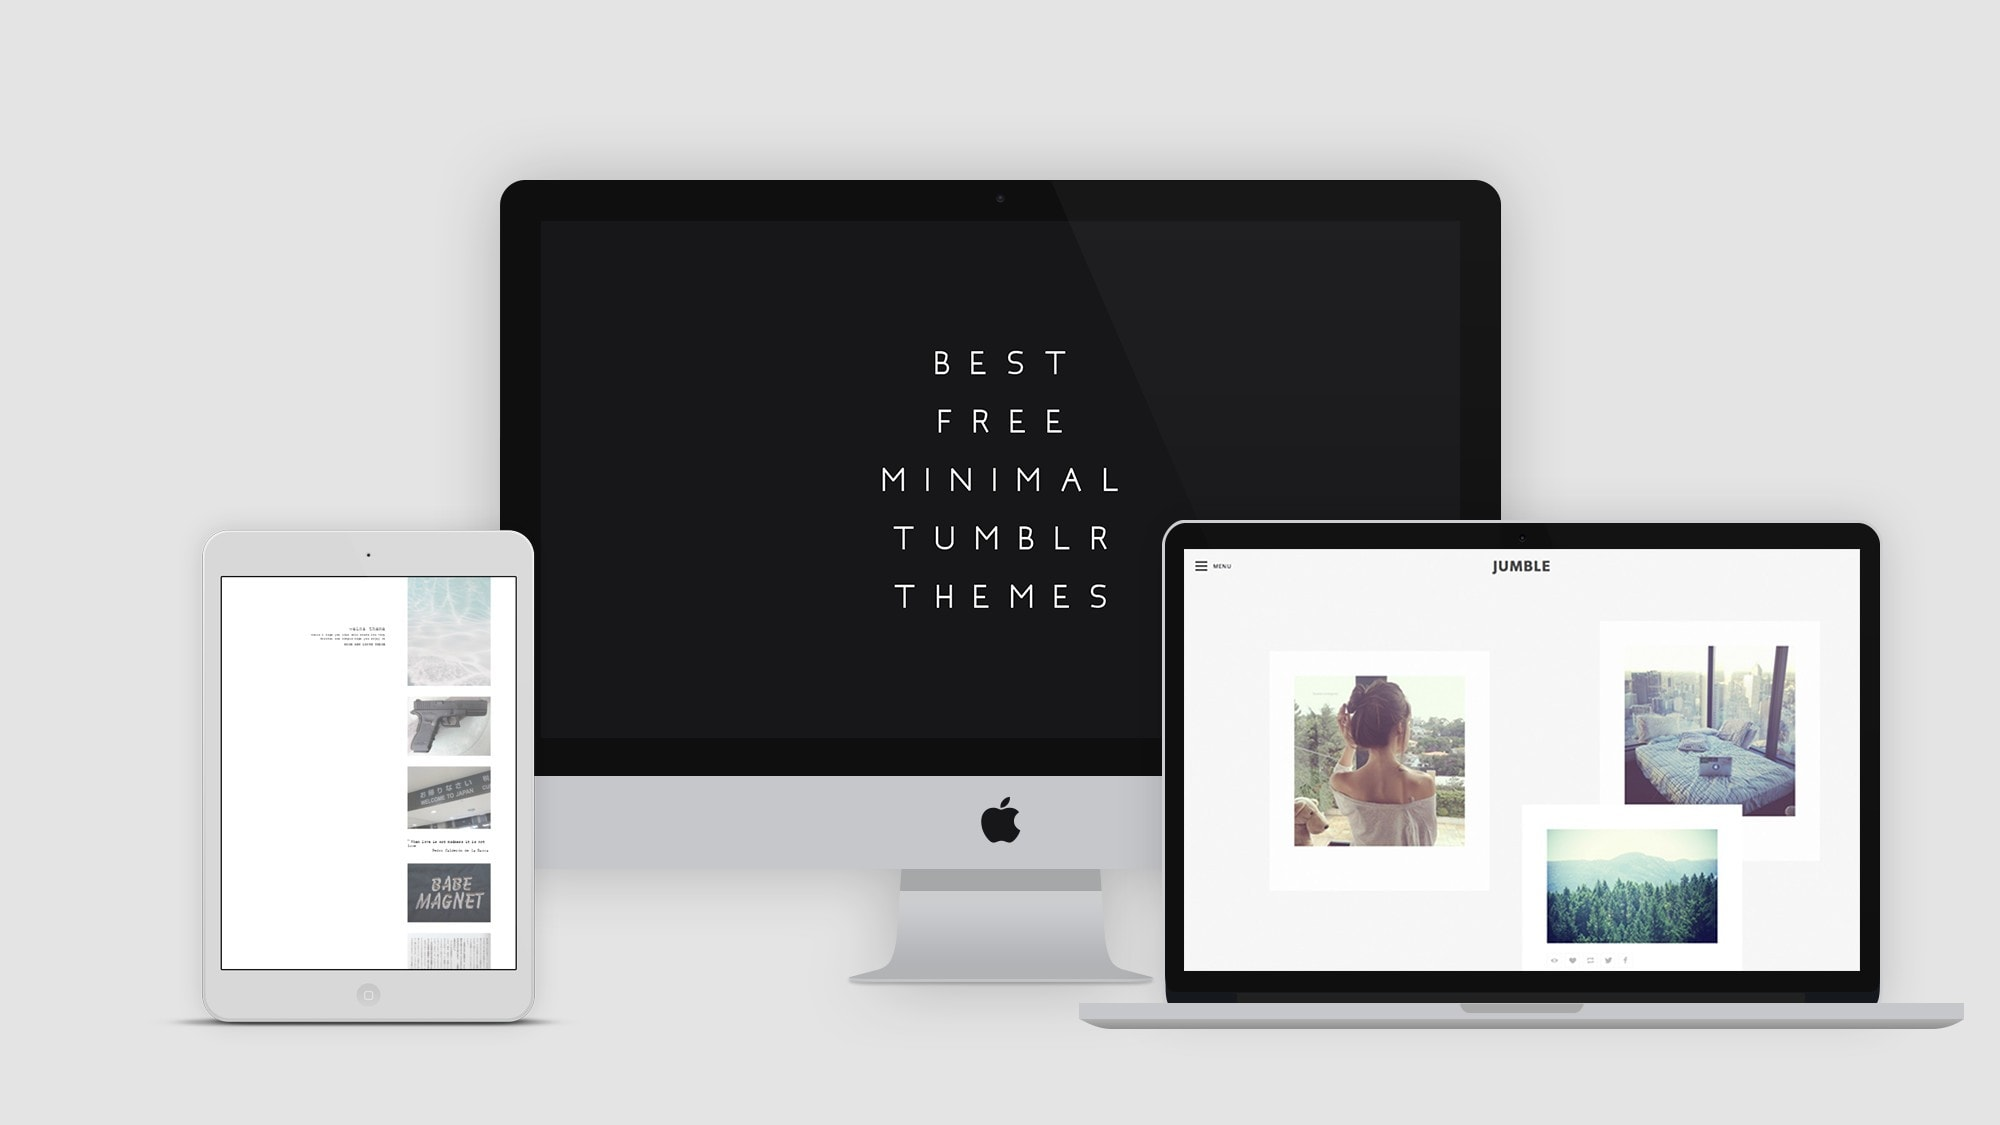 Modern Sleek Design 16 Best Free Minimal Tumblr Themes Hipsthetic